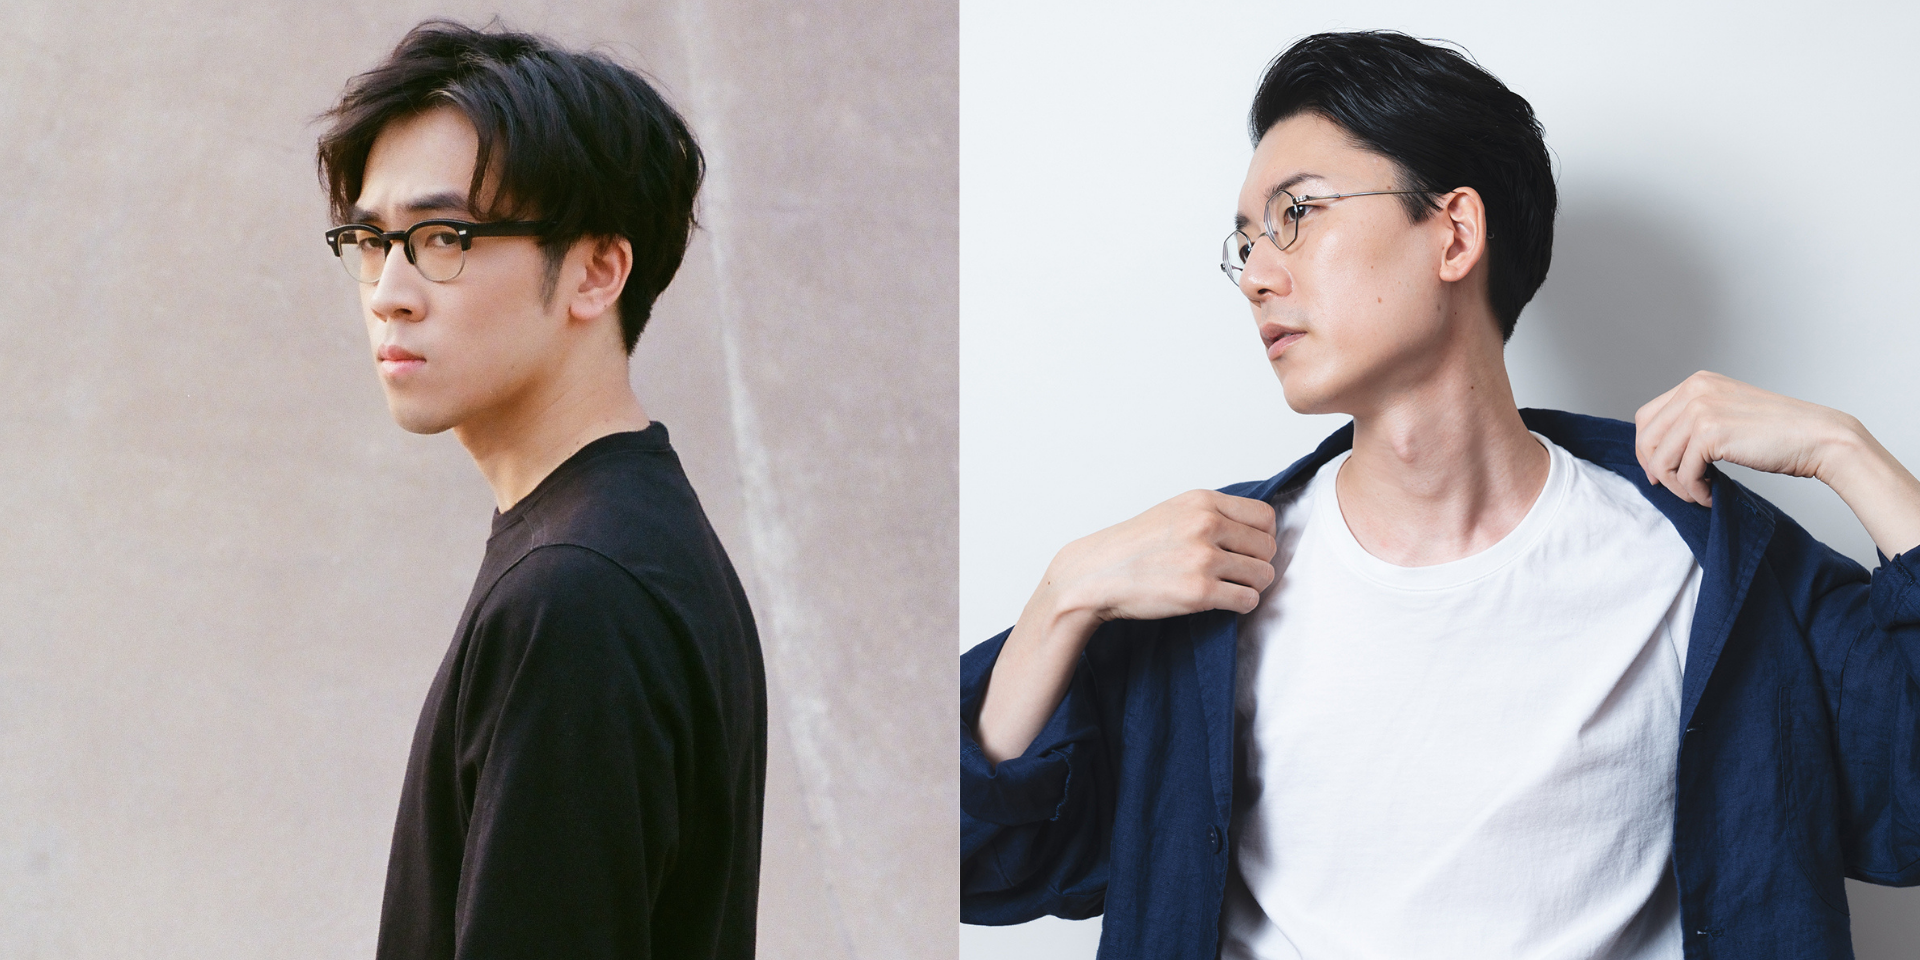 """Charlie Lim joins Kan Sano on his new track 'Momentum': """"This one's for anyone that's stuck in a rut"""" - listen"""